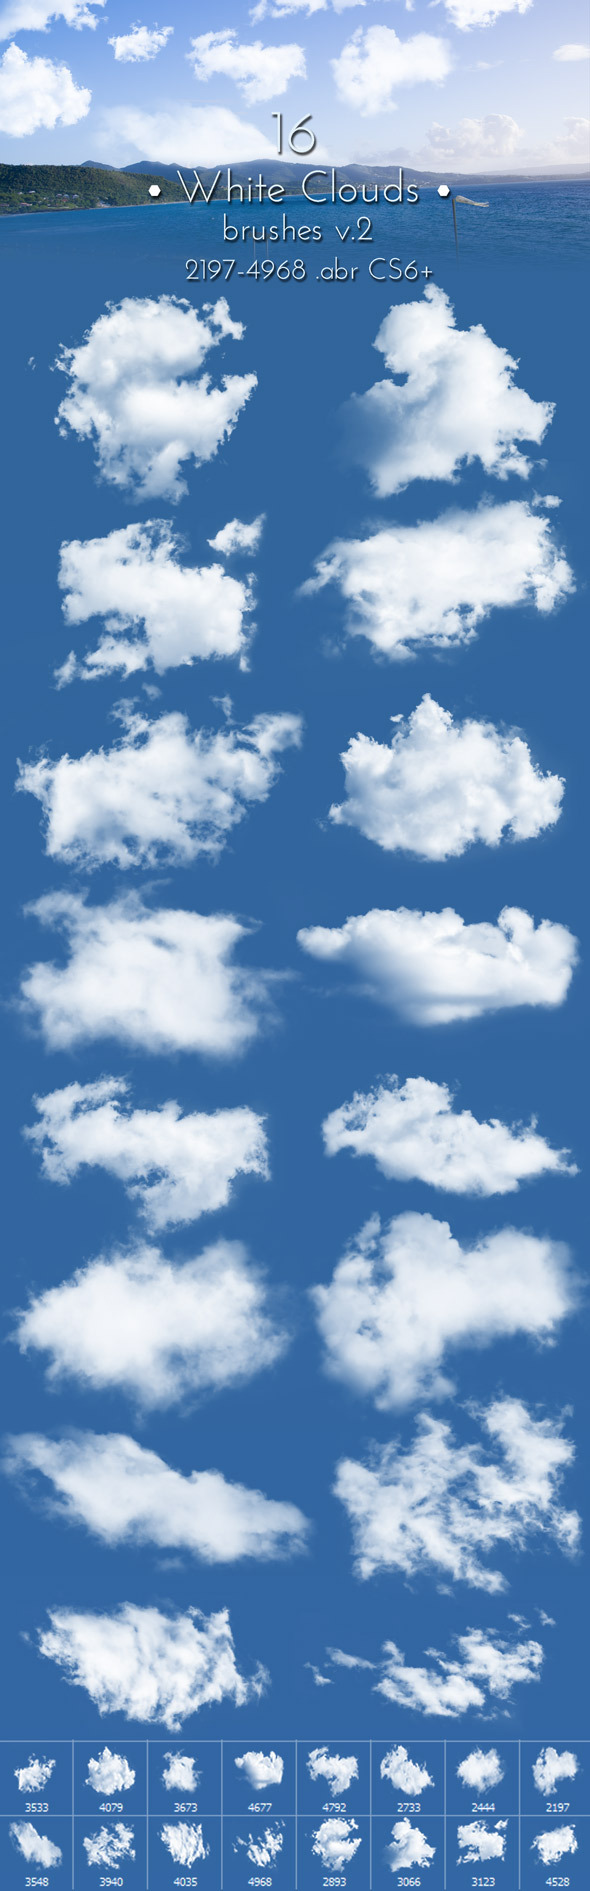 White Clouds Brushes